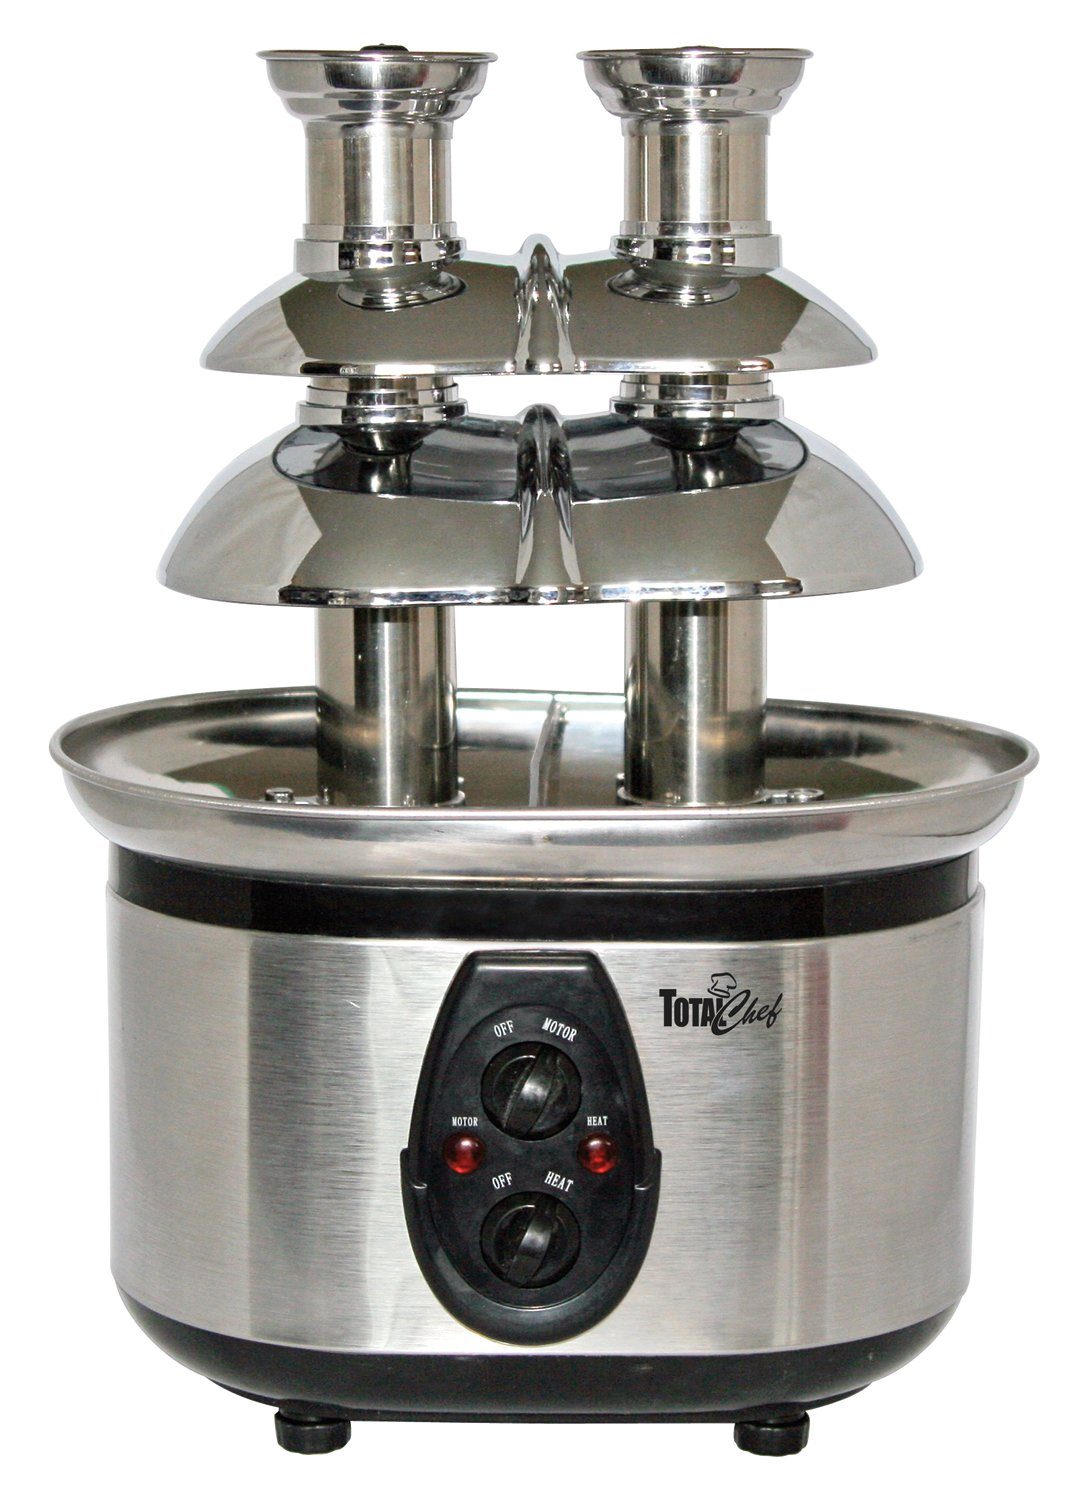 Total Chef WTF-43 Stainless-Steel Double-Tower Chocolate Fountain Koolatron